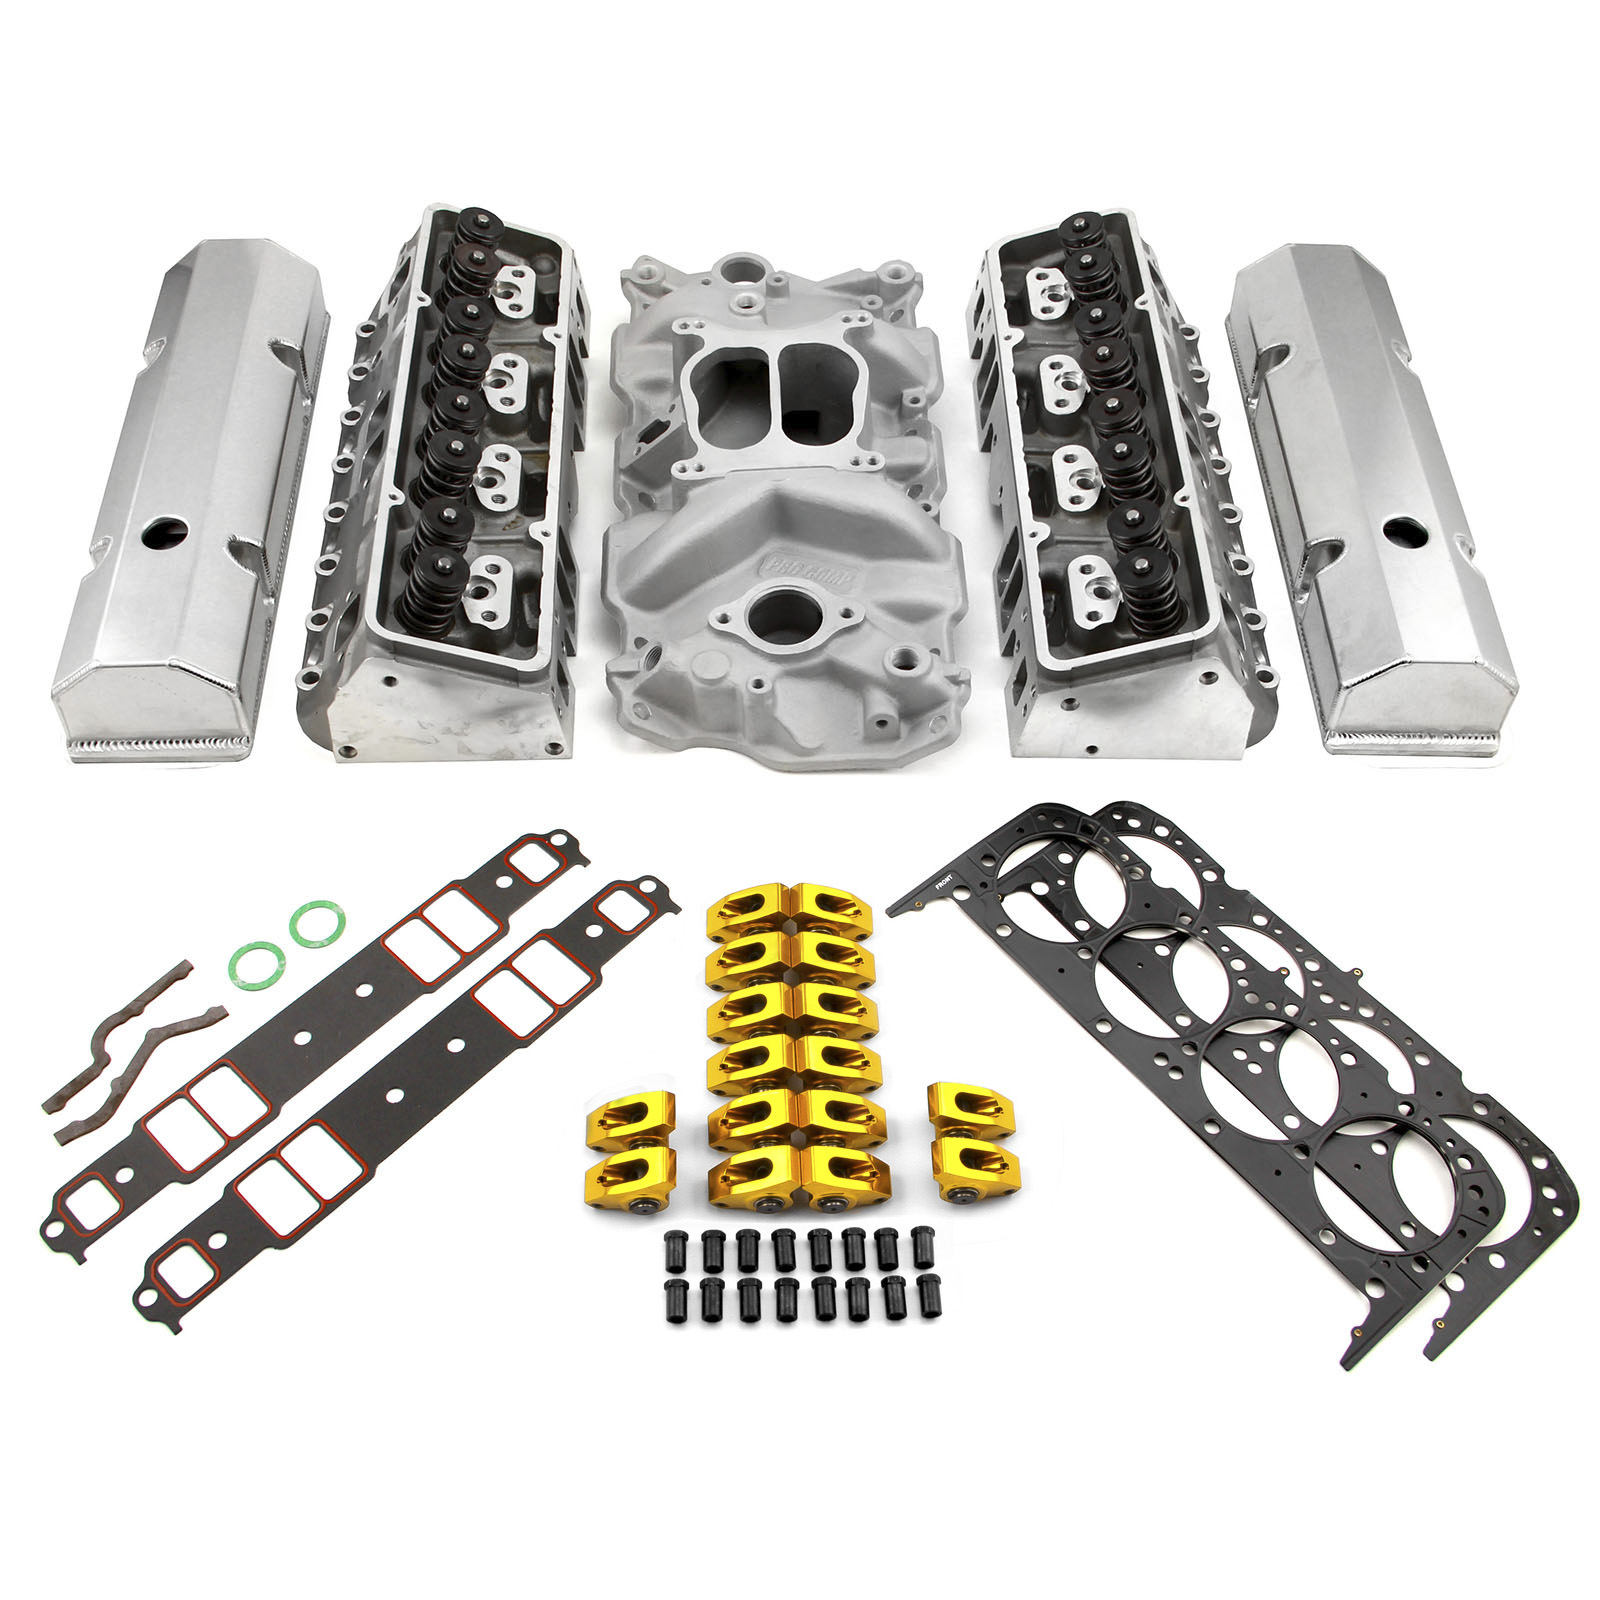 Chevy SBC 350 Hyd FT 220cc Angle Plug Cylinder Head Top End Engine Combo Kit